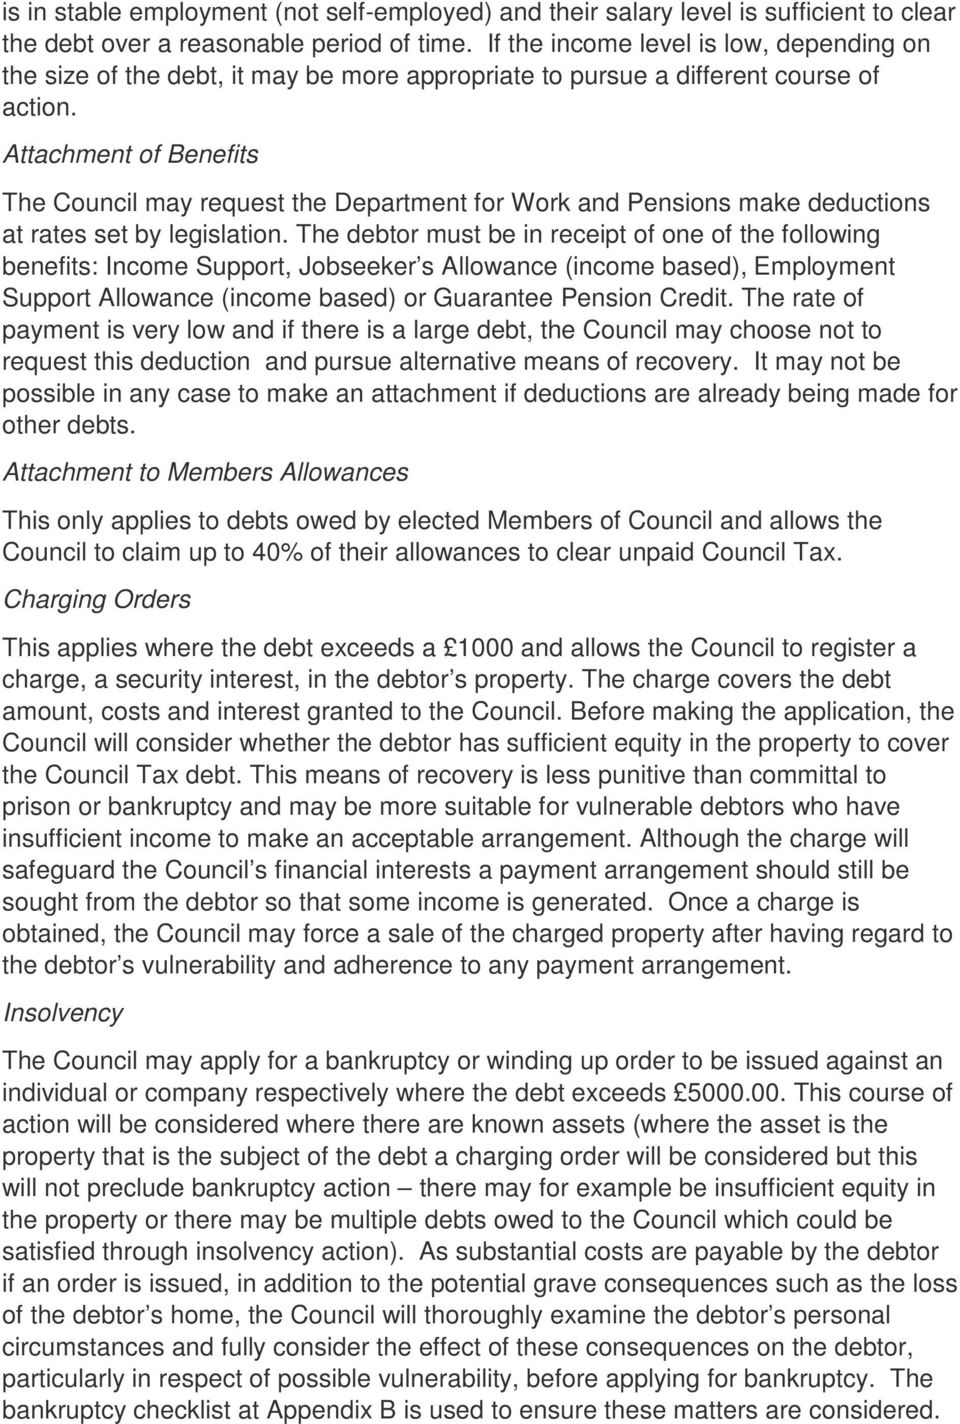 Attachment of Benefits The Council may request the Department for Work and Pensions make deductions at rates set by legislation.